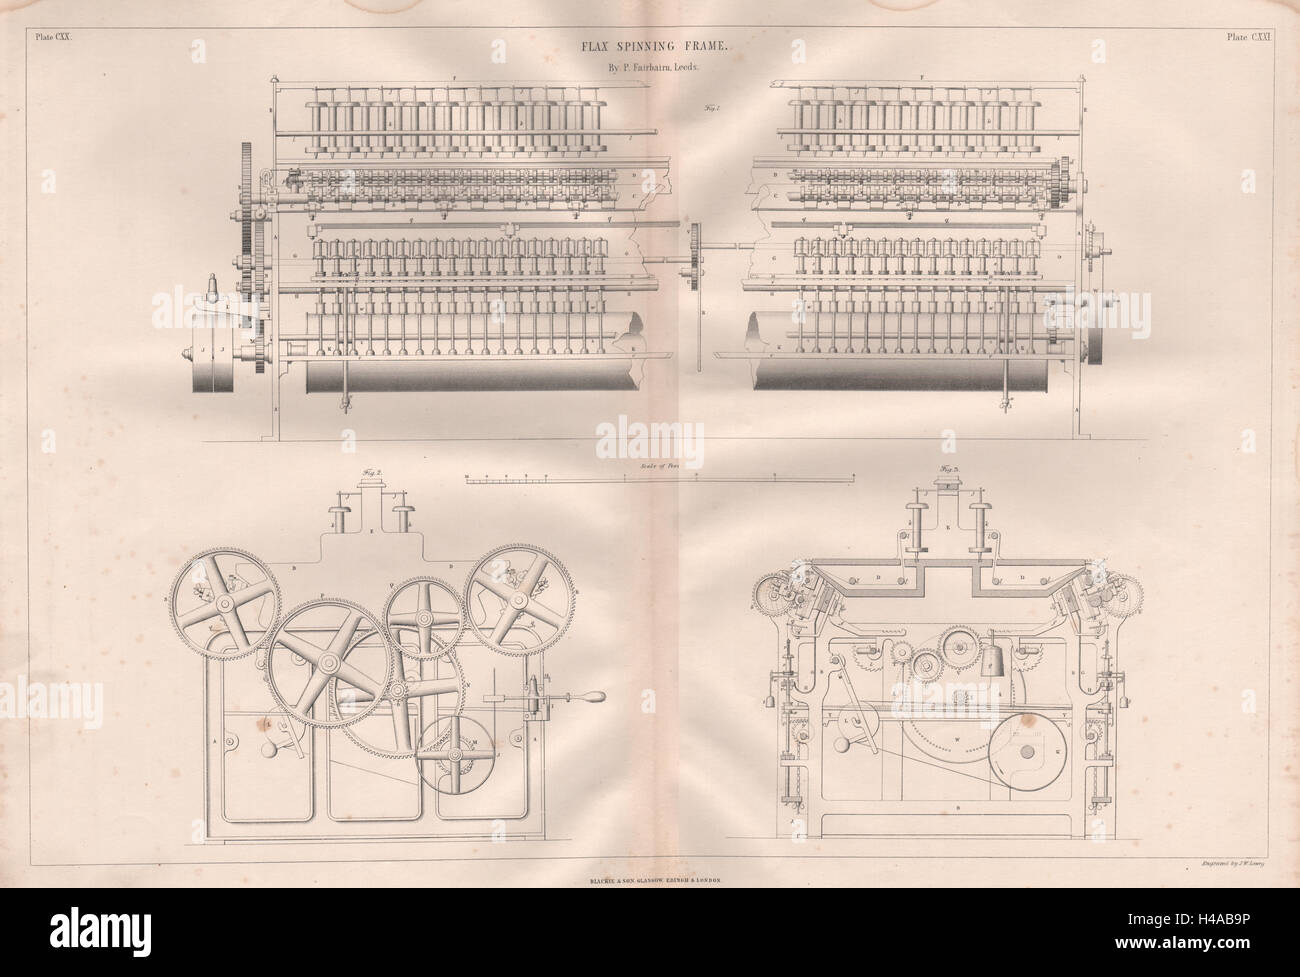 VICTORIAN ENGINEERING DRAWING. Flax spinning frame by P. Fairbairn ...